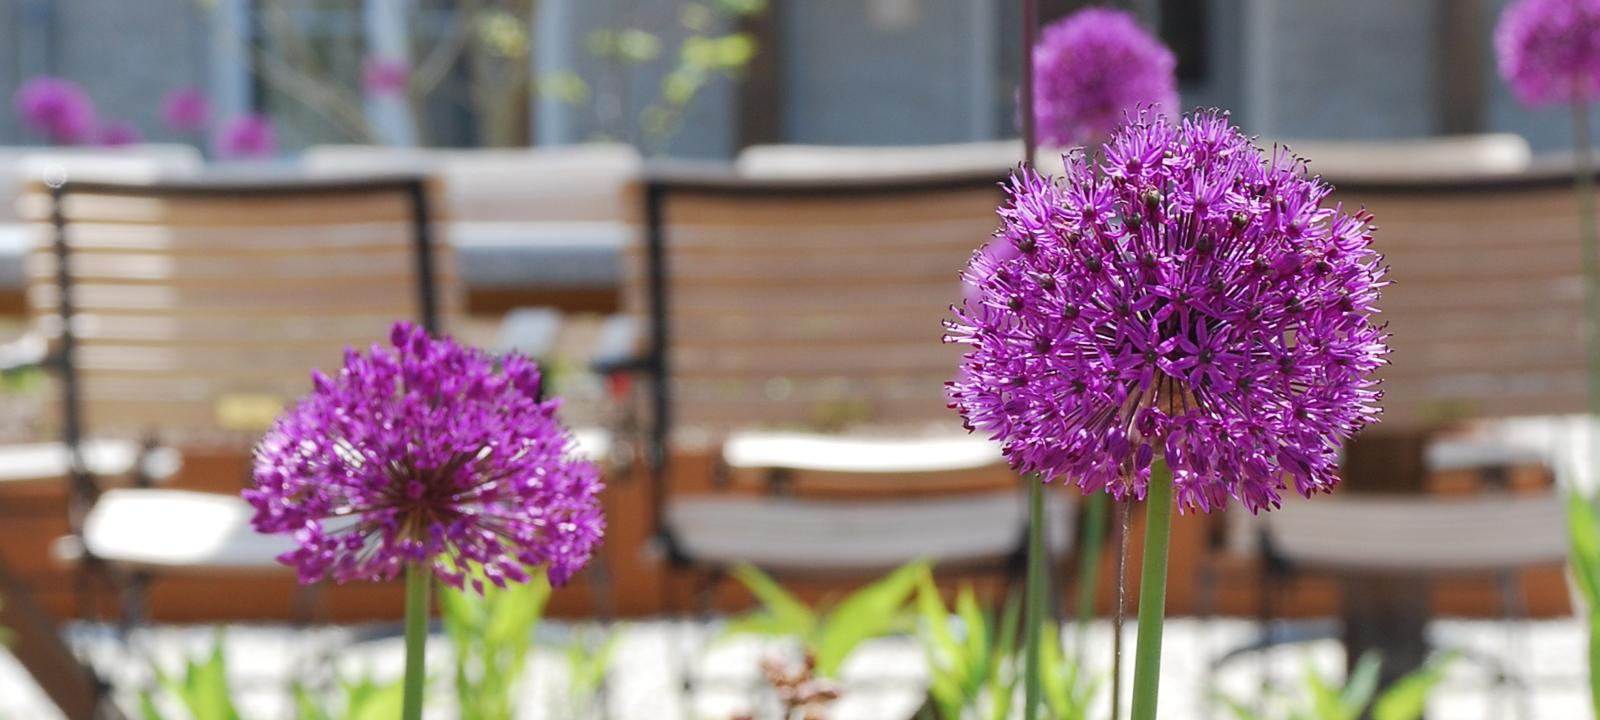 Ornamental leeks in front of a large table and chairs